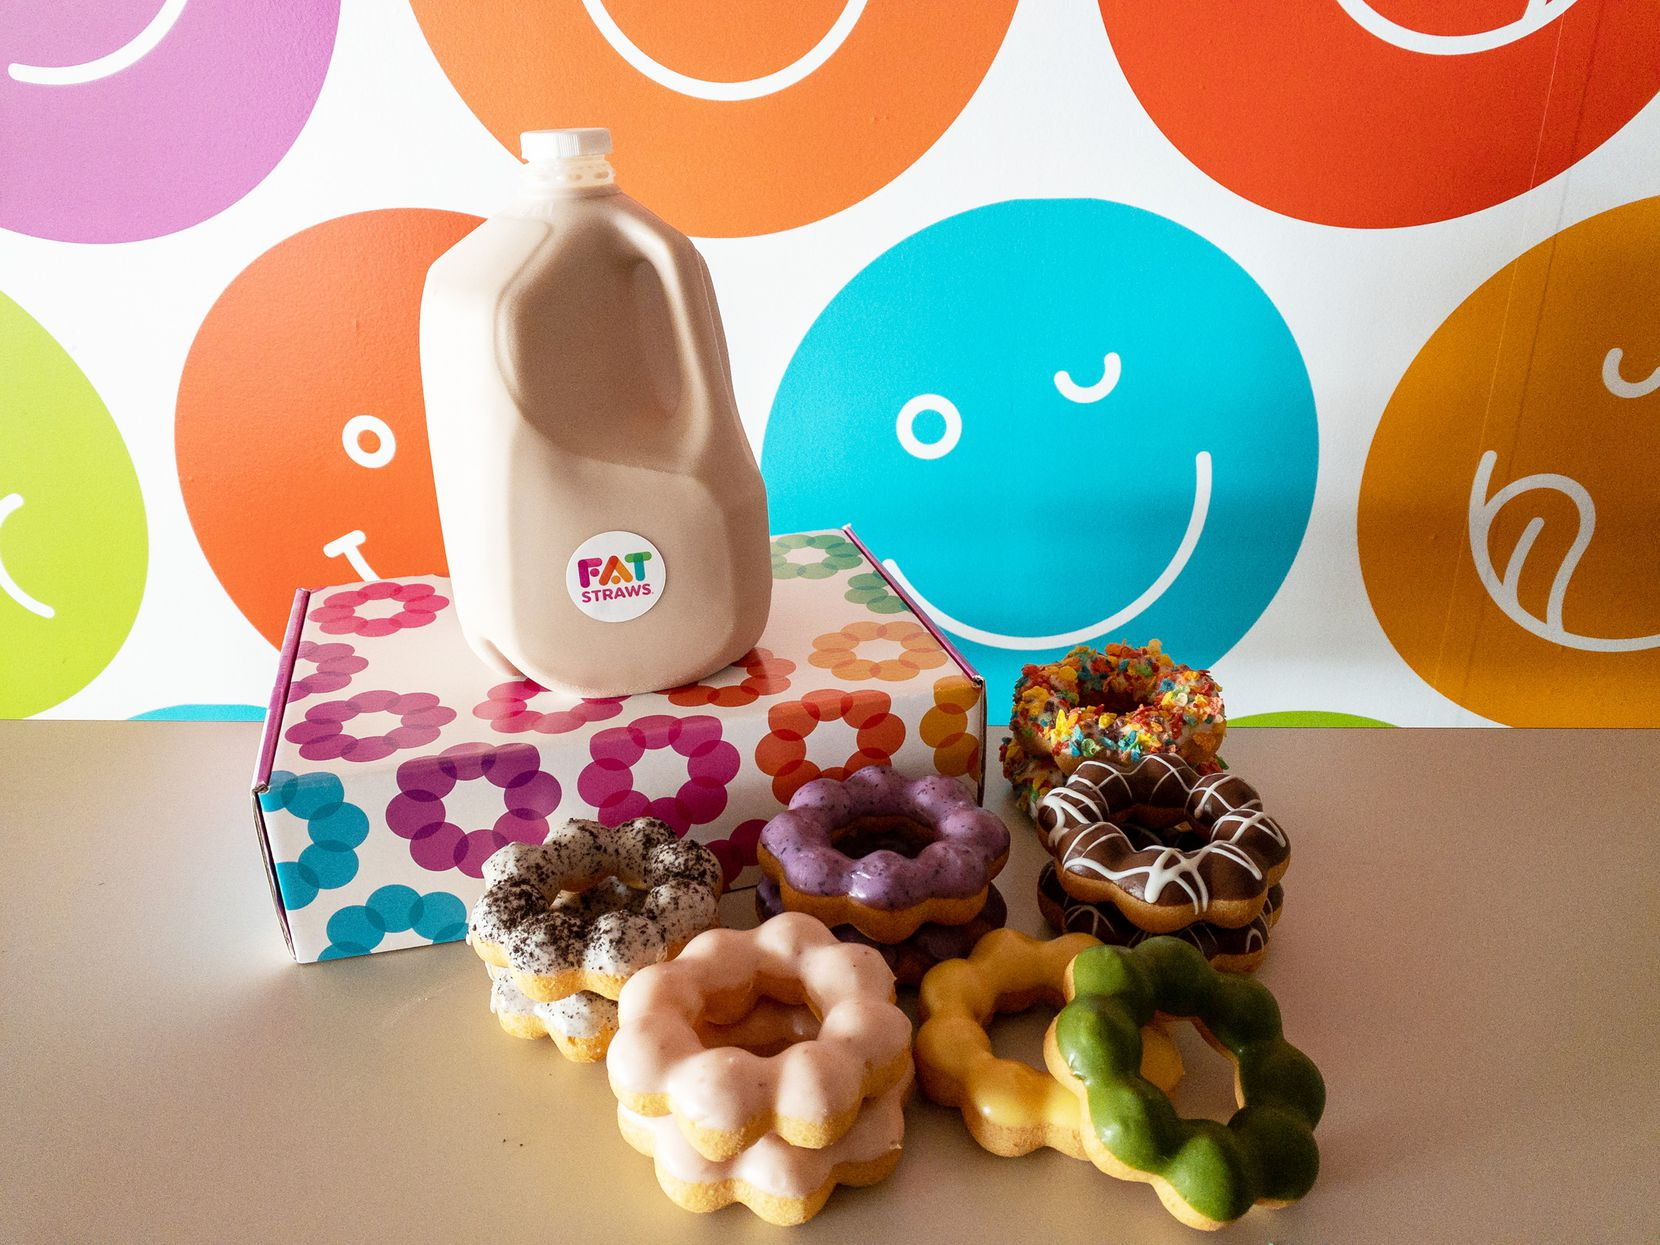 Fat Straws offers Smile Packs for Father's Day, June 21, 2020.